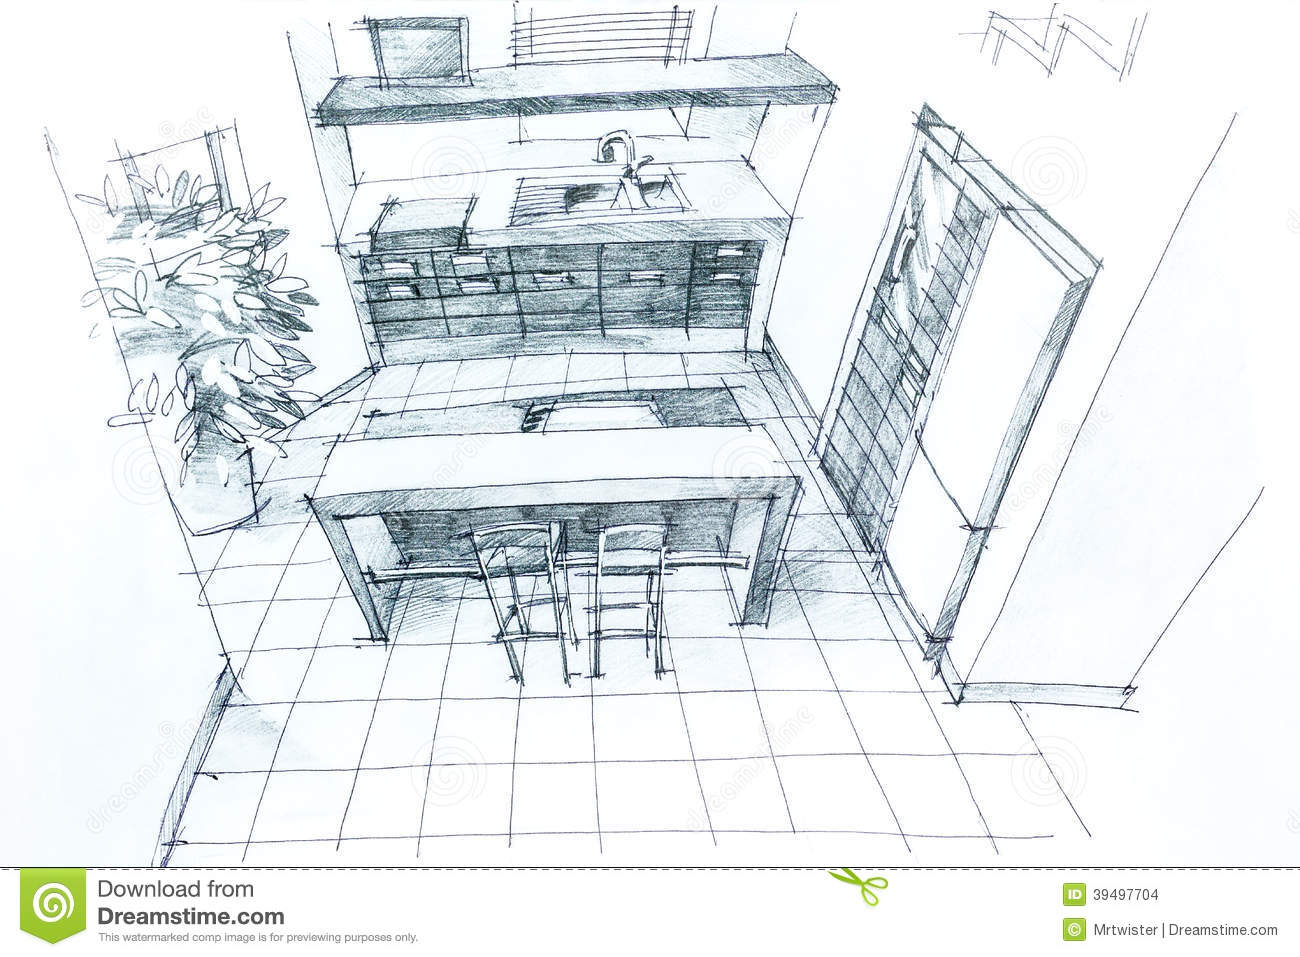 Architecture Drawing Hand architectural hand drawing stock illustration - image: 39498684